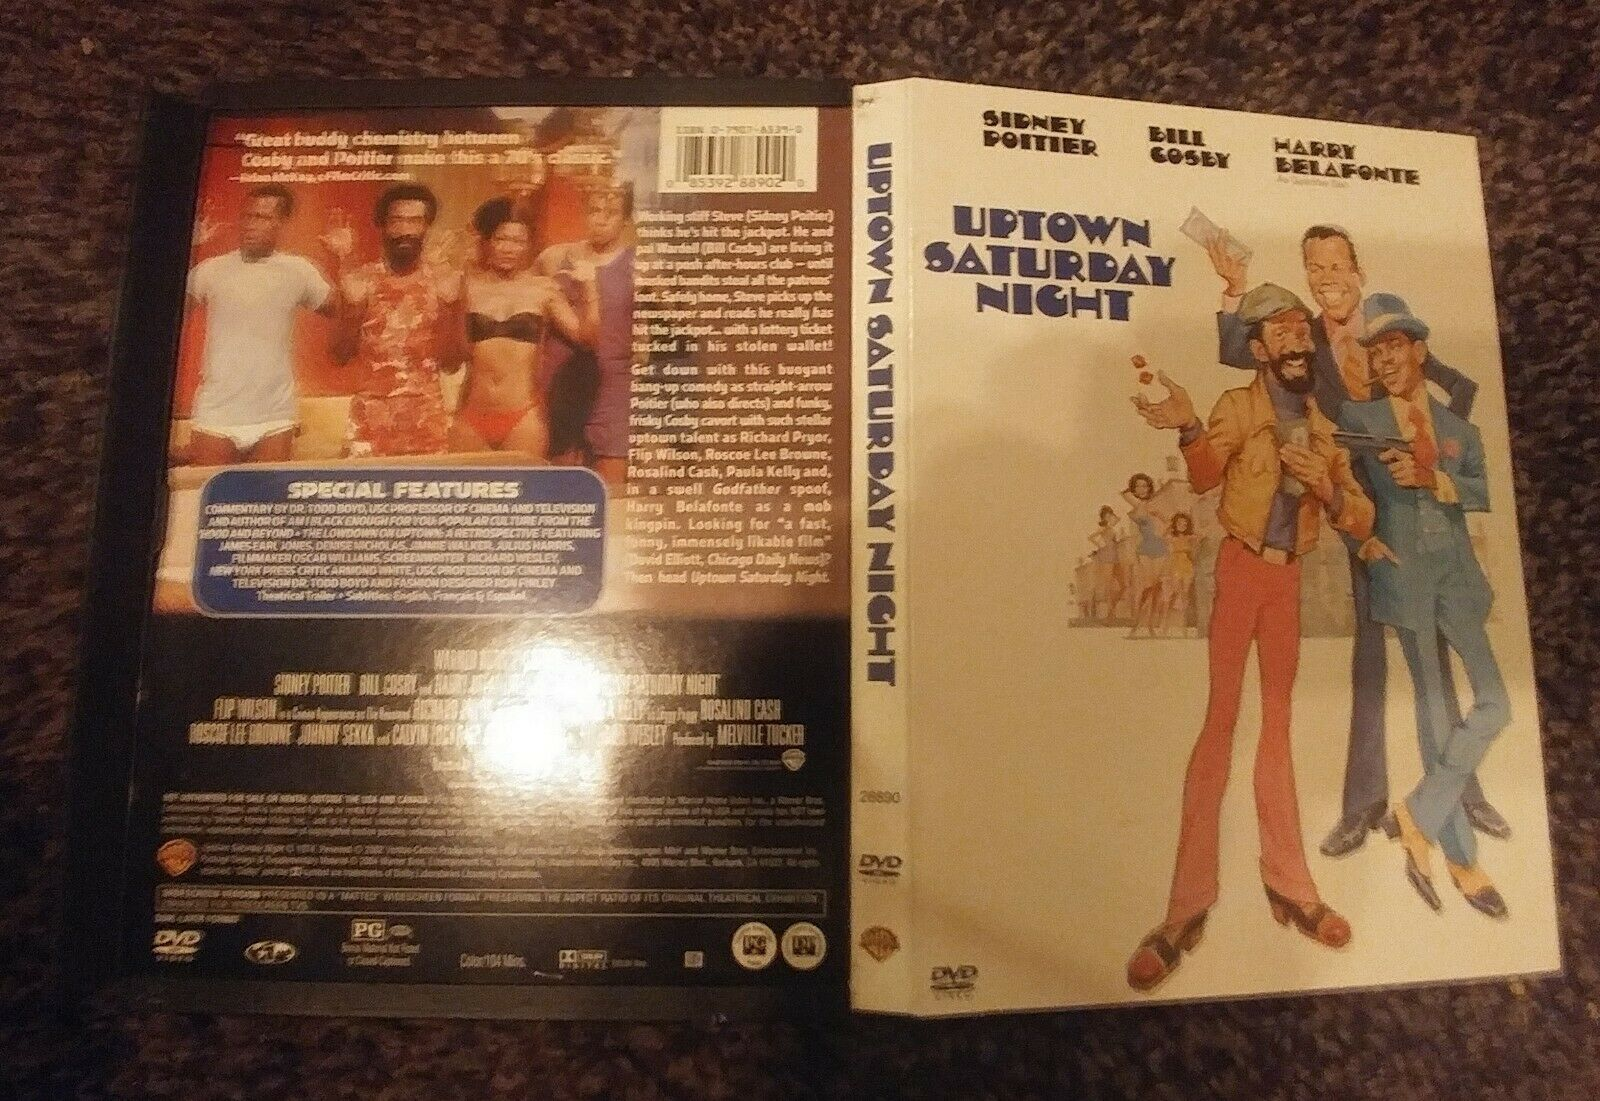 Uptown Saturday Night - 2004 U.S. DVD - With Commentary- Very Good  - $14.77